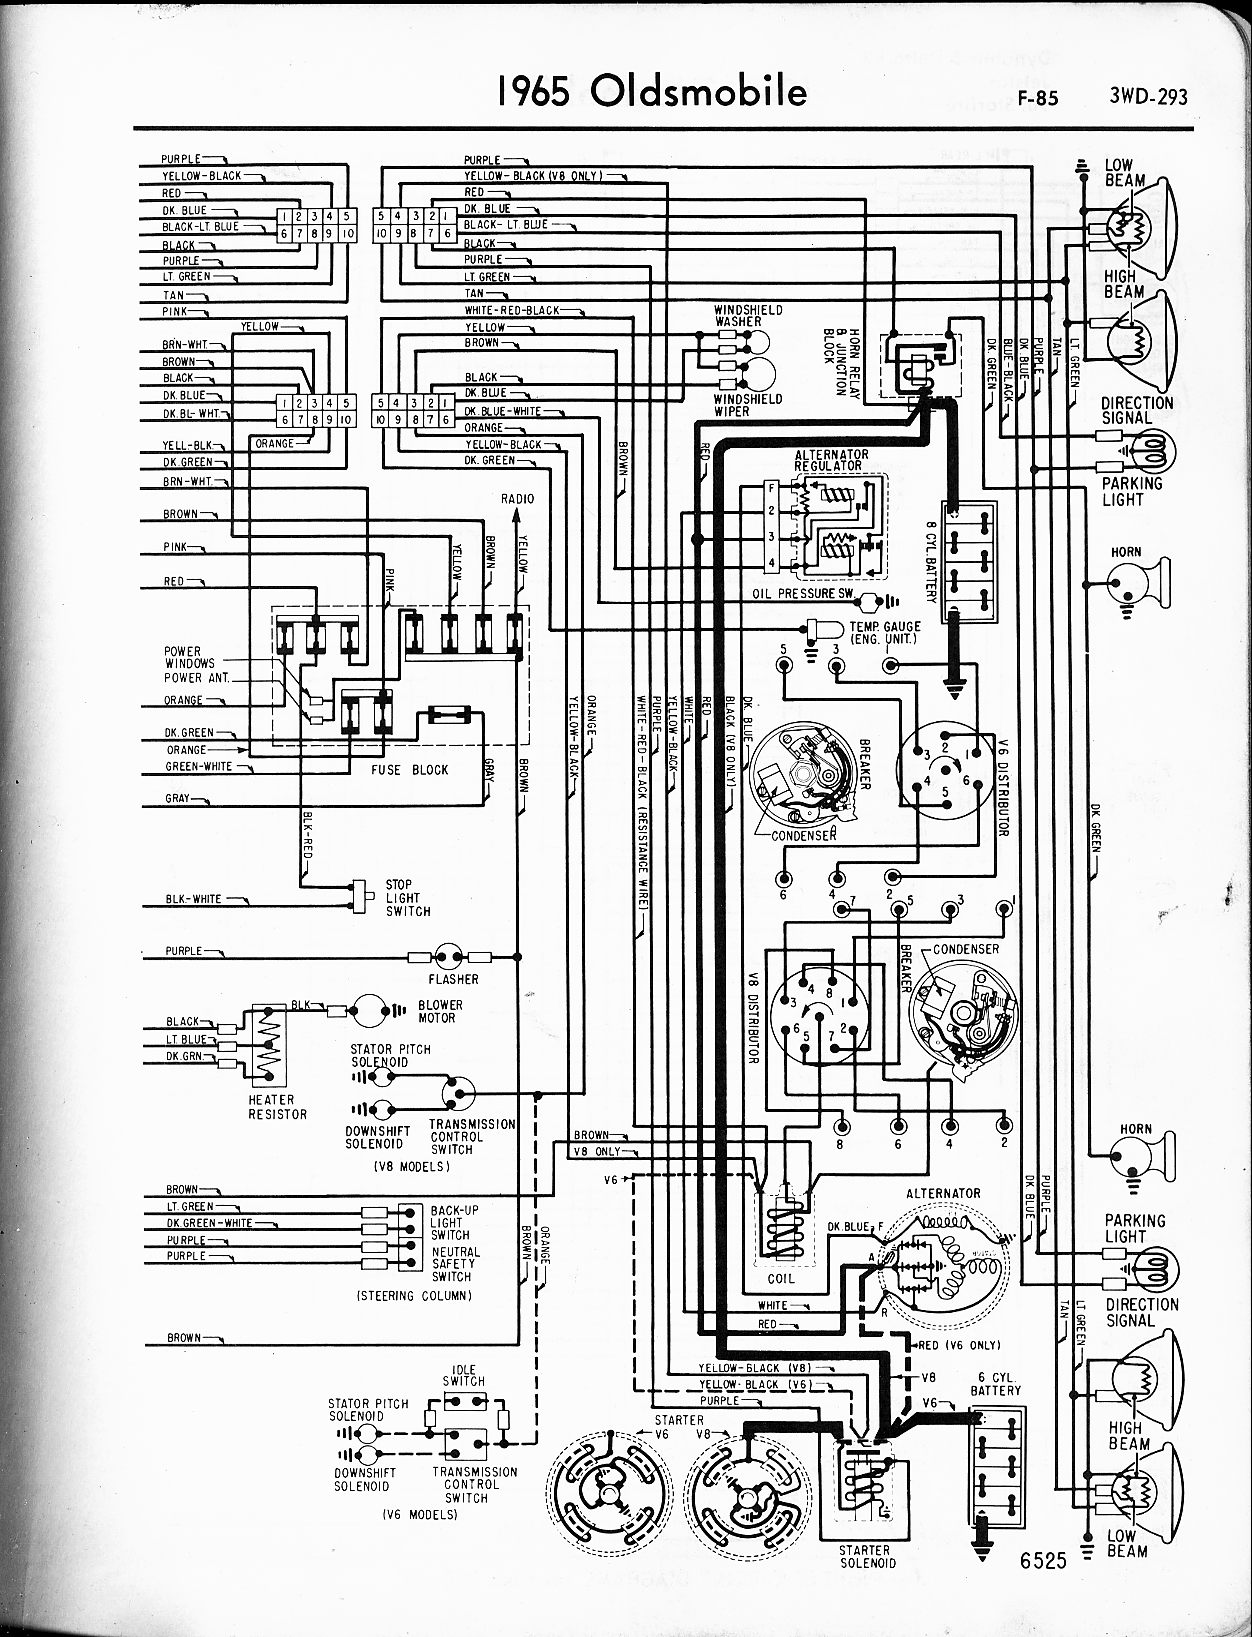 382B40C 67 Olds Cutlass Wiring Diagram | Wiring ResourcesWiring Resources